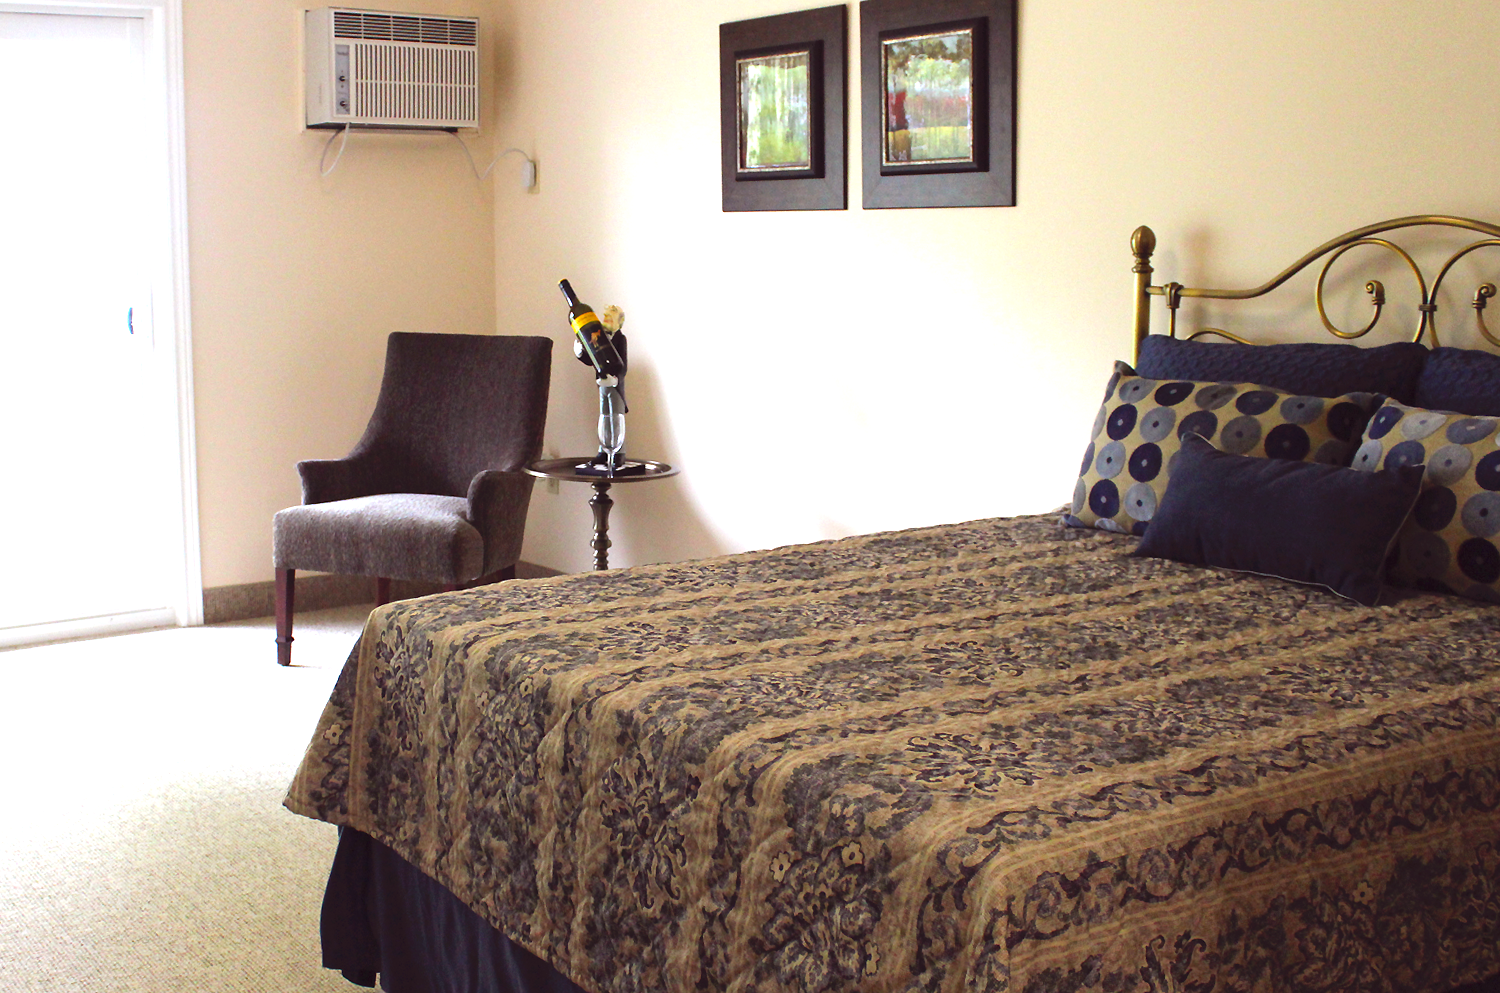 Birchmere Bedroom. Click to view larger image.